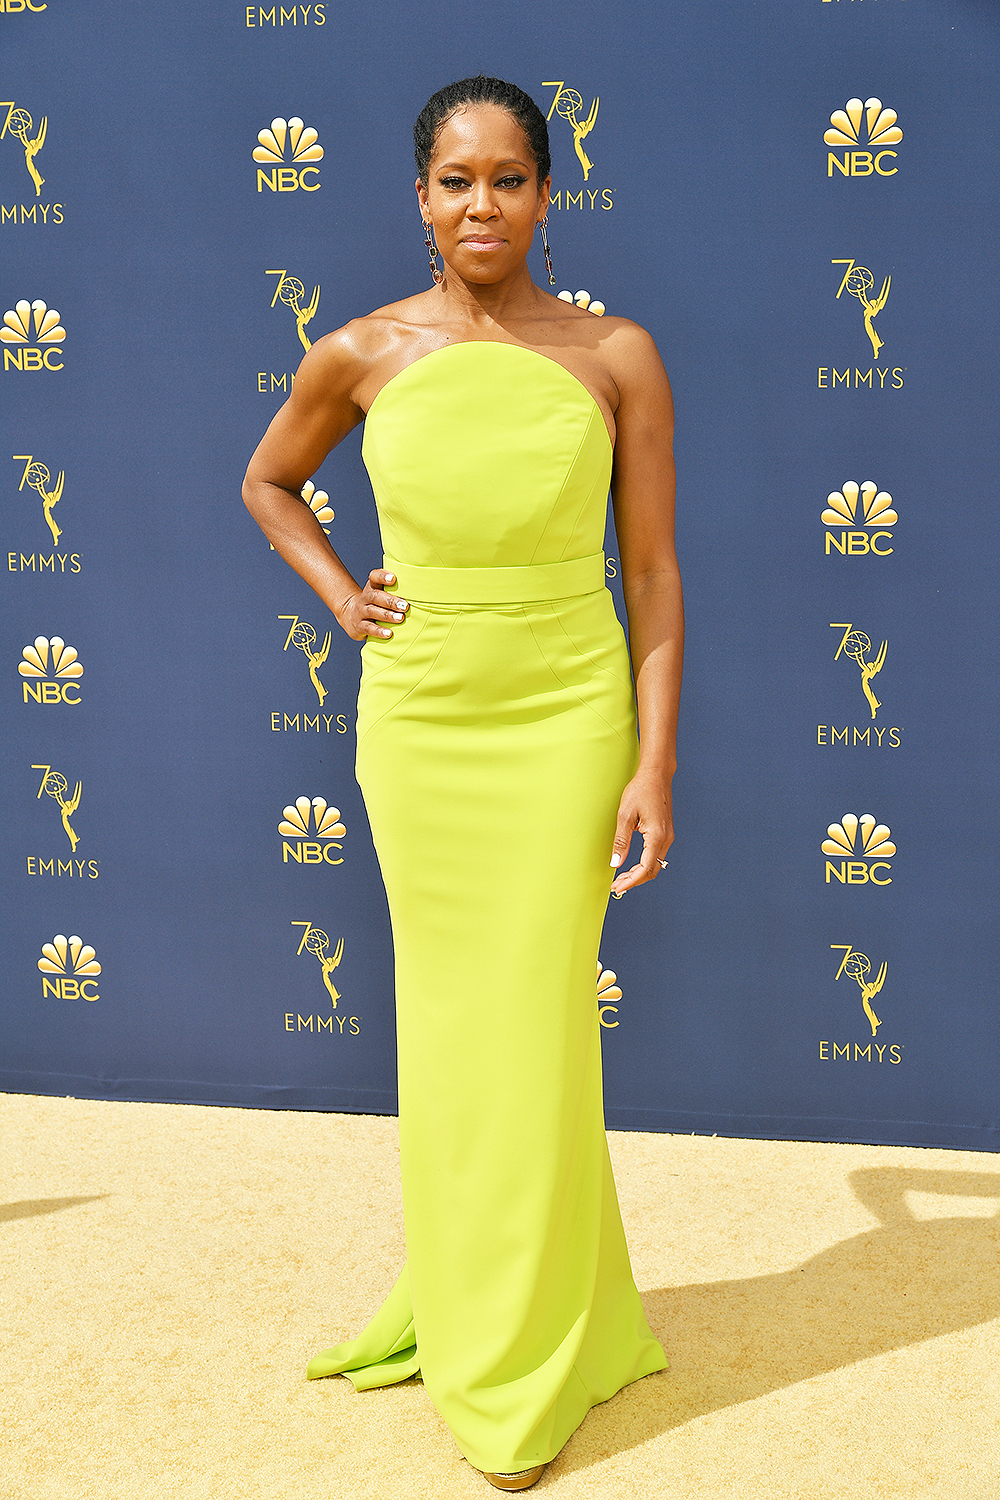 2018 Best Dressed Emmys I Regina King in Christian Siriano #BestDressed #Emmys #RedCarpet #Fashionista